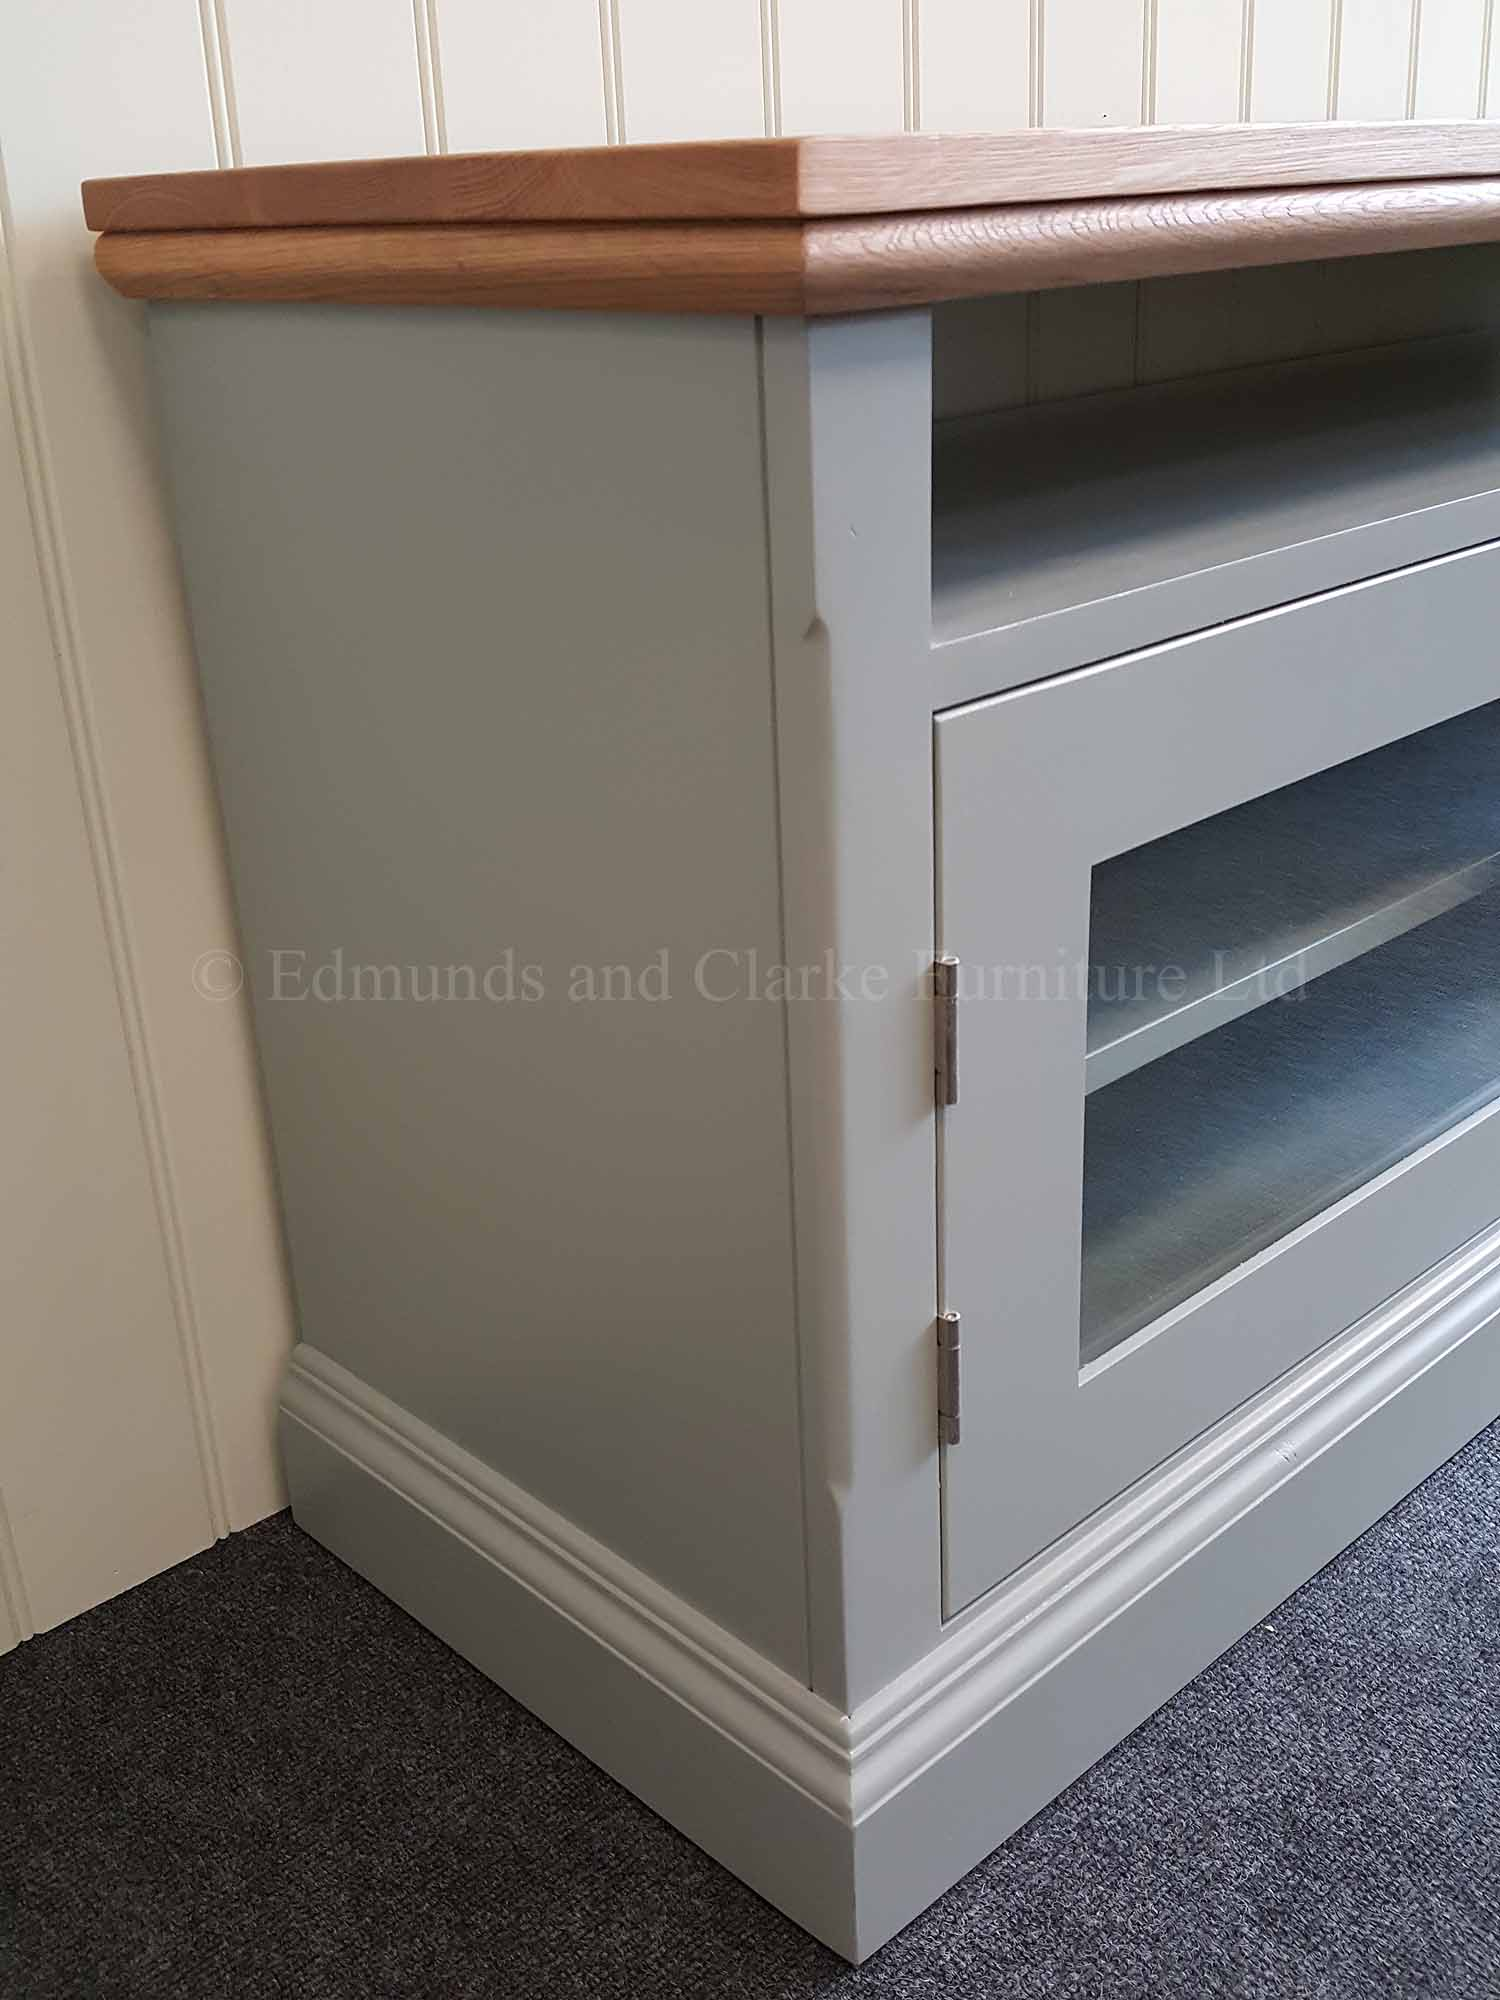 Edmunds painted television media unit